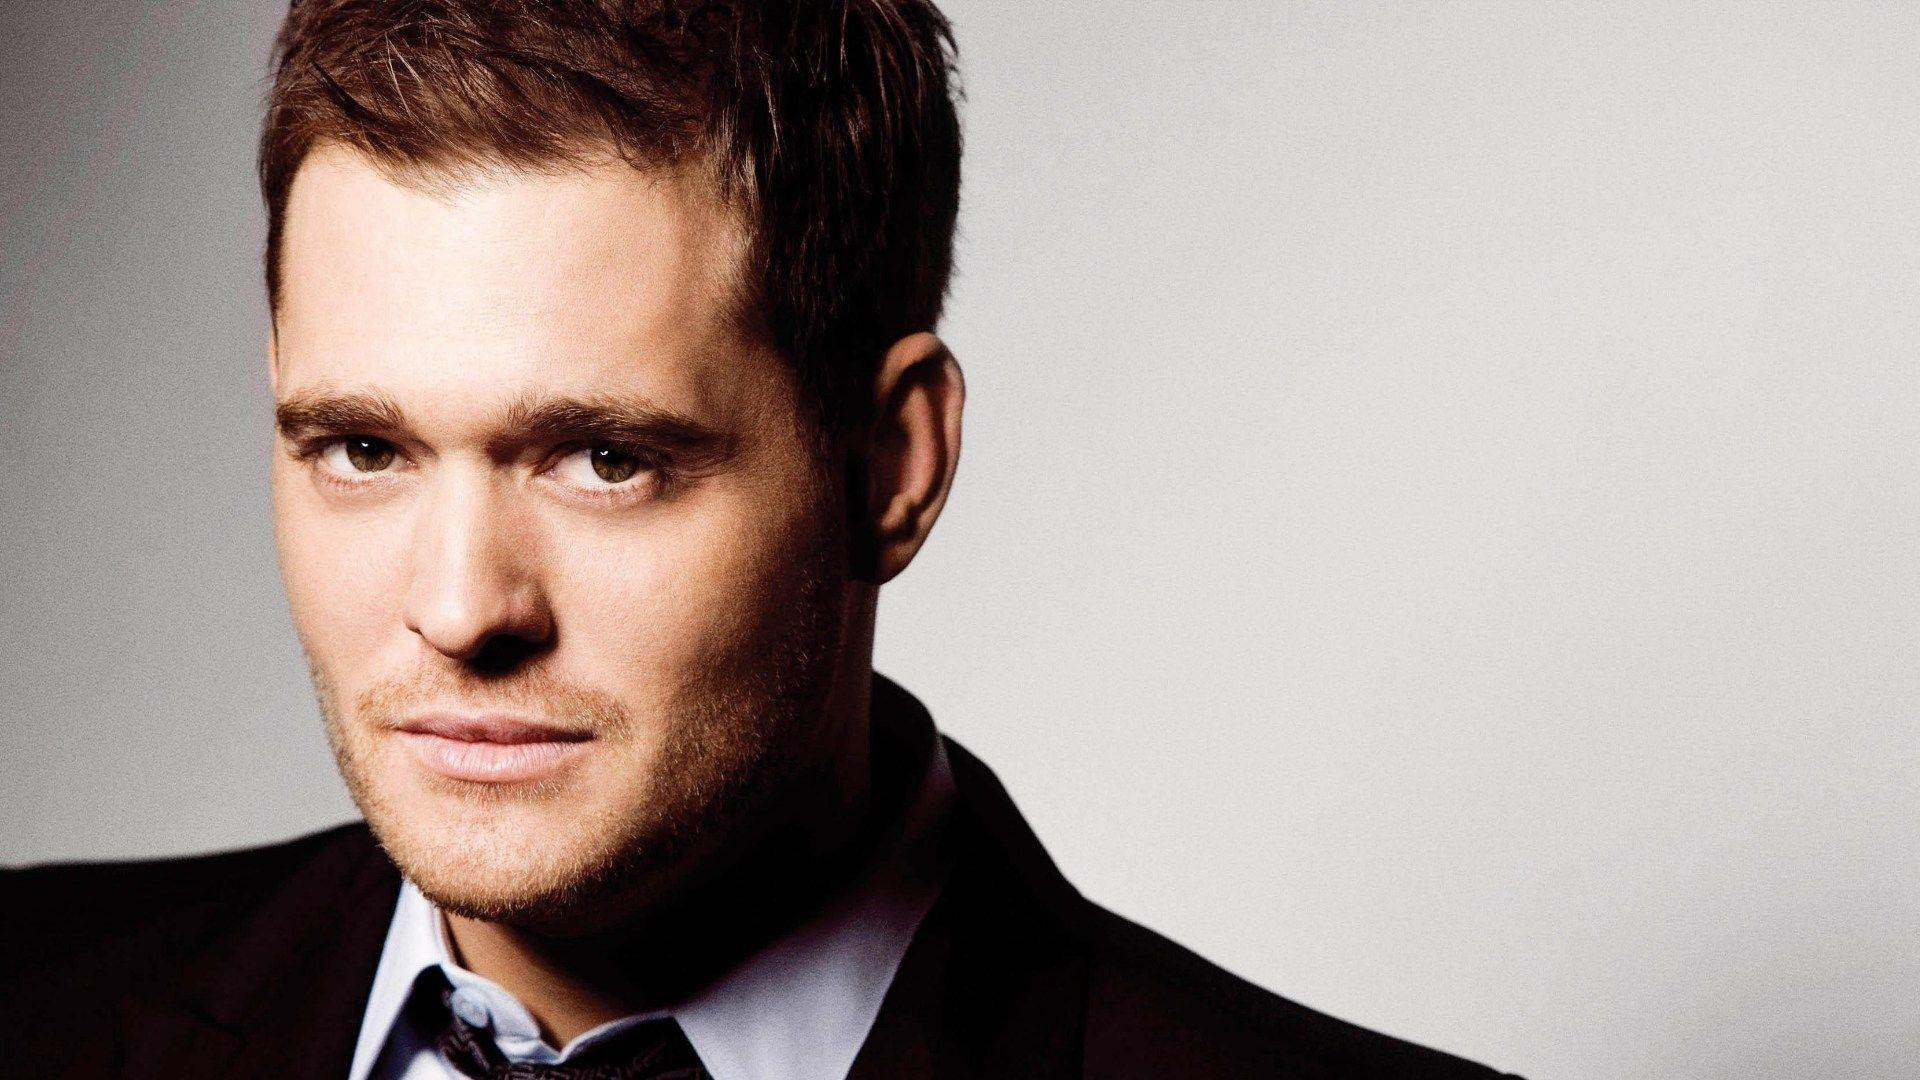 Michael Bublé Full HD Wallpapers and Backgrounds